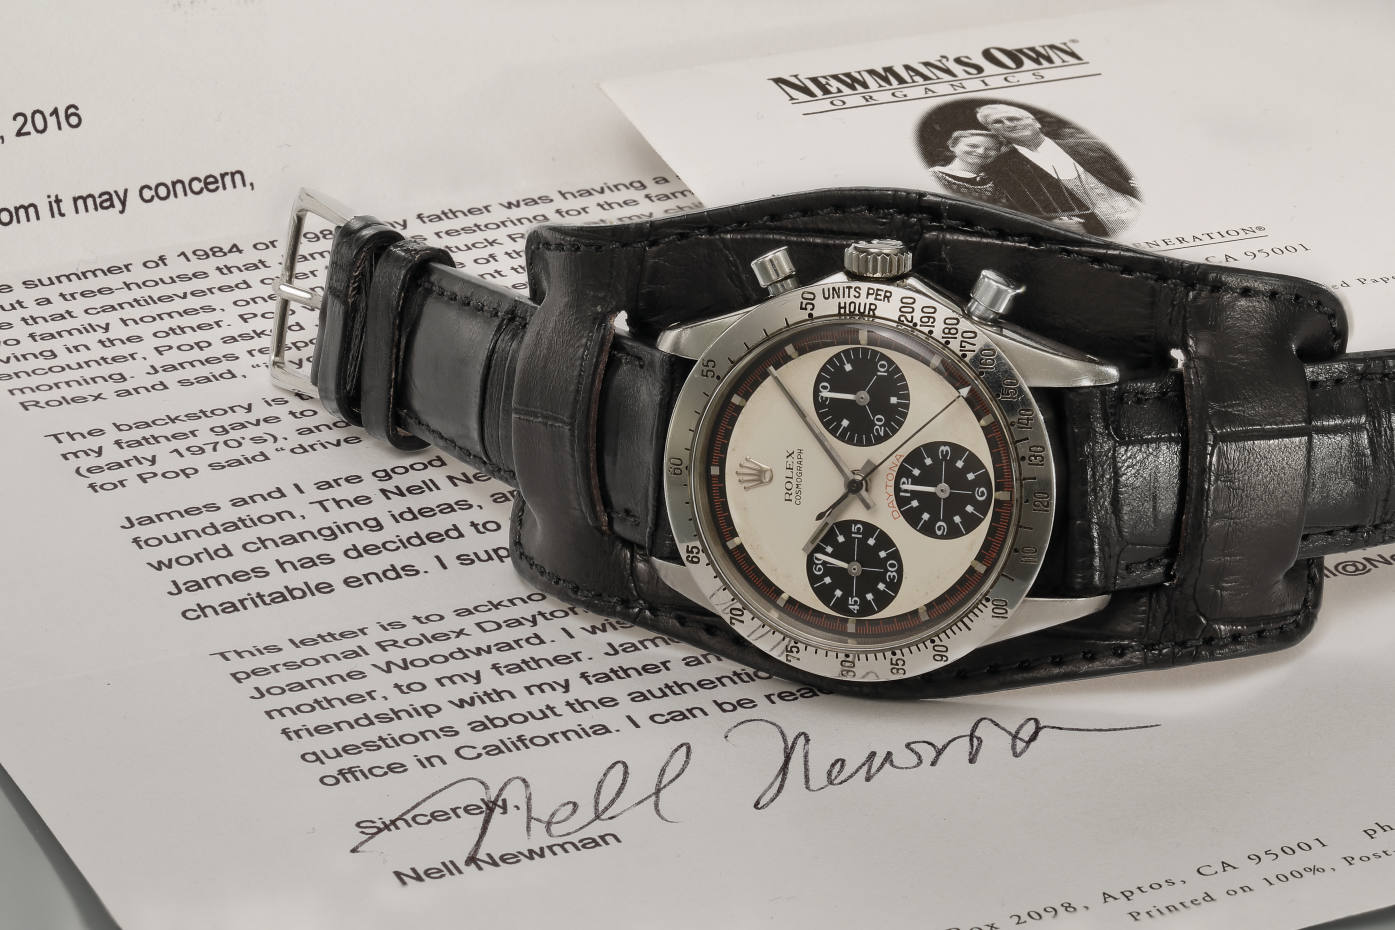 The Paul Newman Rolex Daytona on Jean Paul Menicucci Bund strap, which recently sold for $17.8mat auction